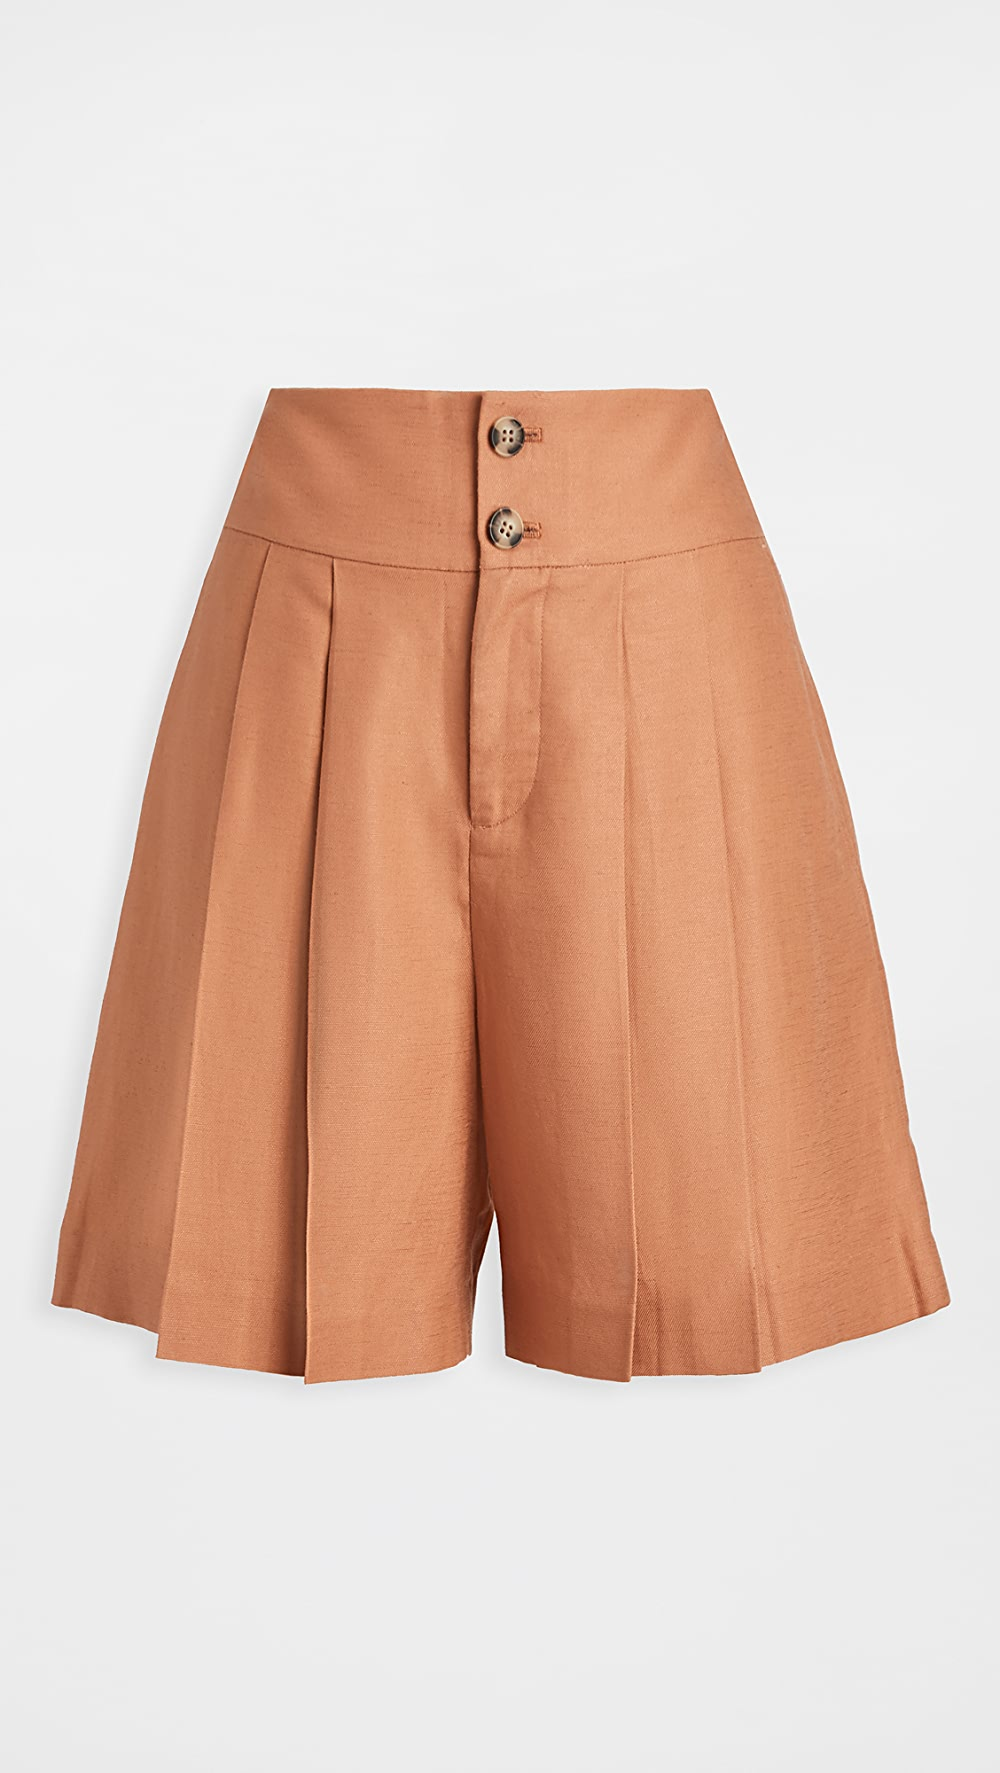 100% Quality Club Monaco - High Waisted Shorts Removing Obstruction